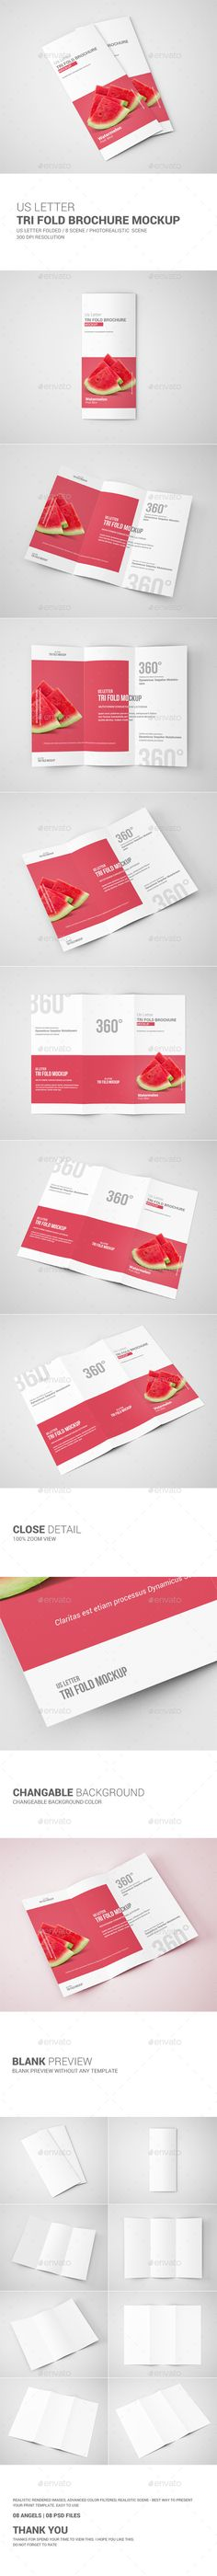 TriFold Brochure Mockup  US Letter — Photoshop PSD #tri-fold #dl mockup • Available here → https://graphicriver.net/item/trifold-brochure-mockup-us-letter/10877376?ref=pxcr